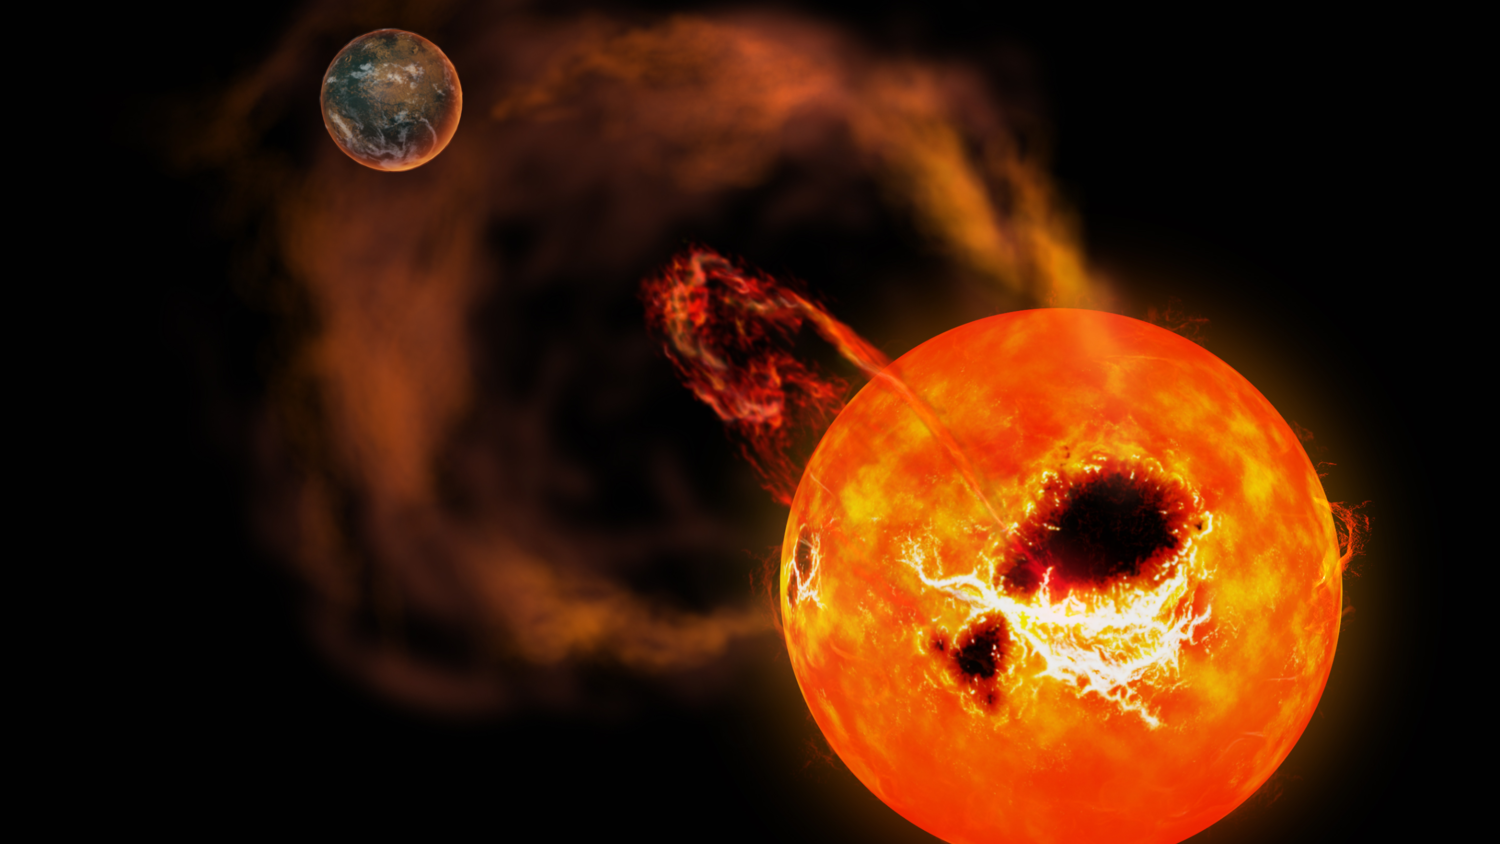 Superflare occurred on a distant star a powerful phenomenon alarmed scientists